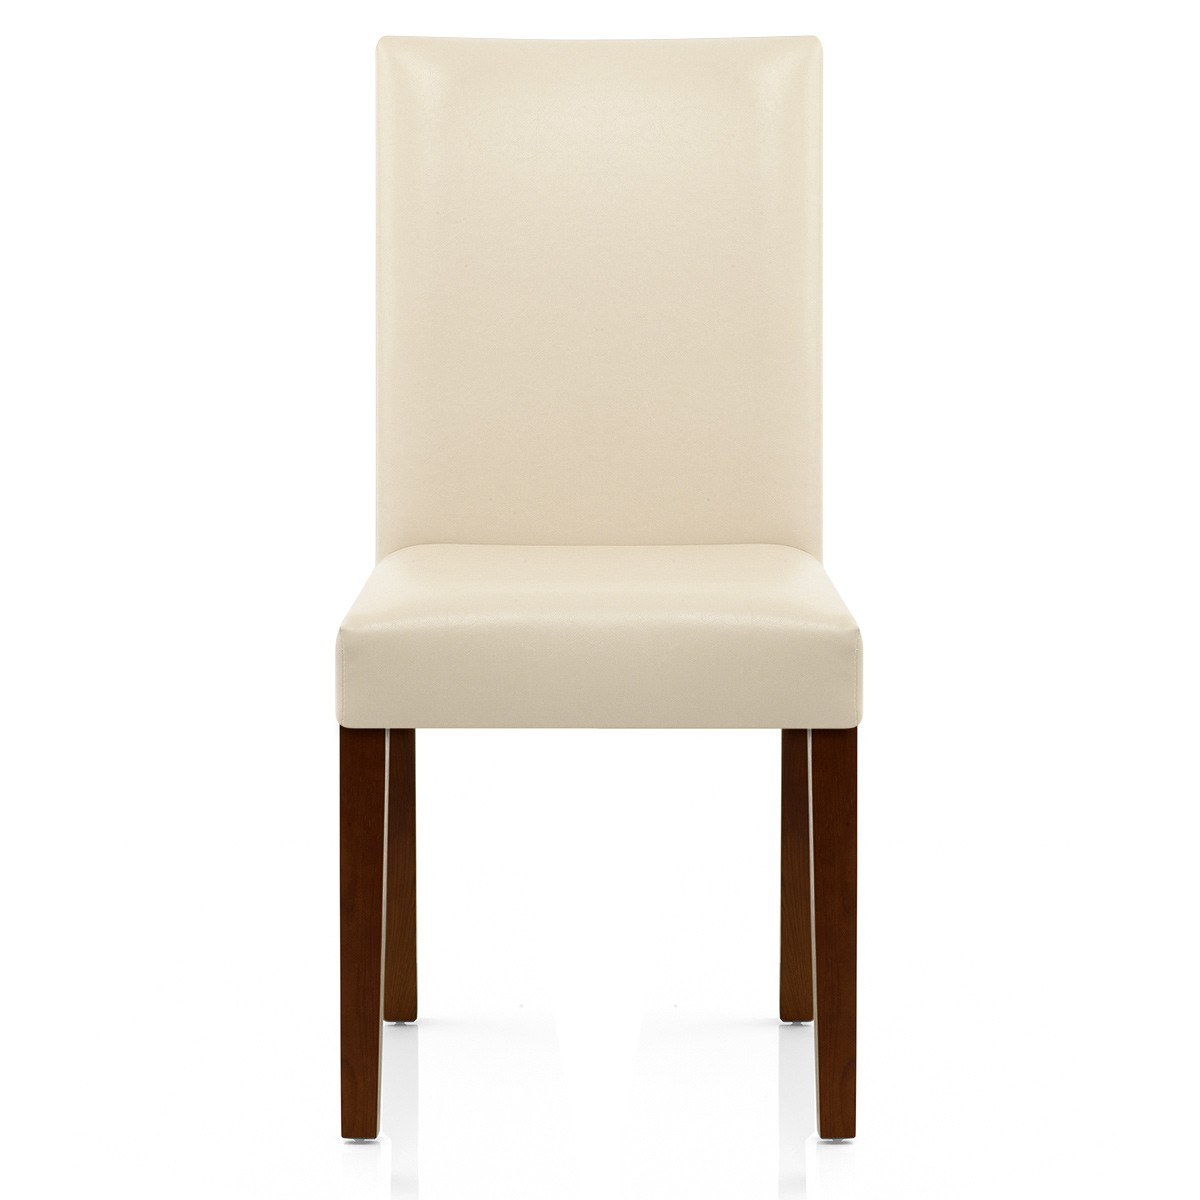 Dining Room Chairs Chicago: Chicago Walnut Dining Chair Cream